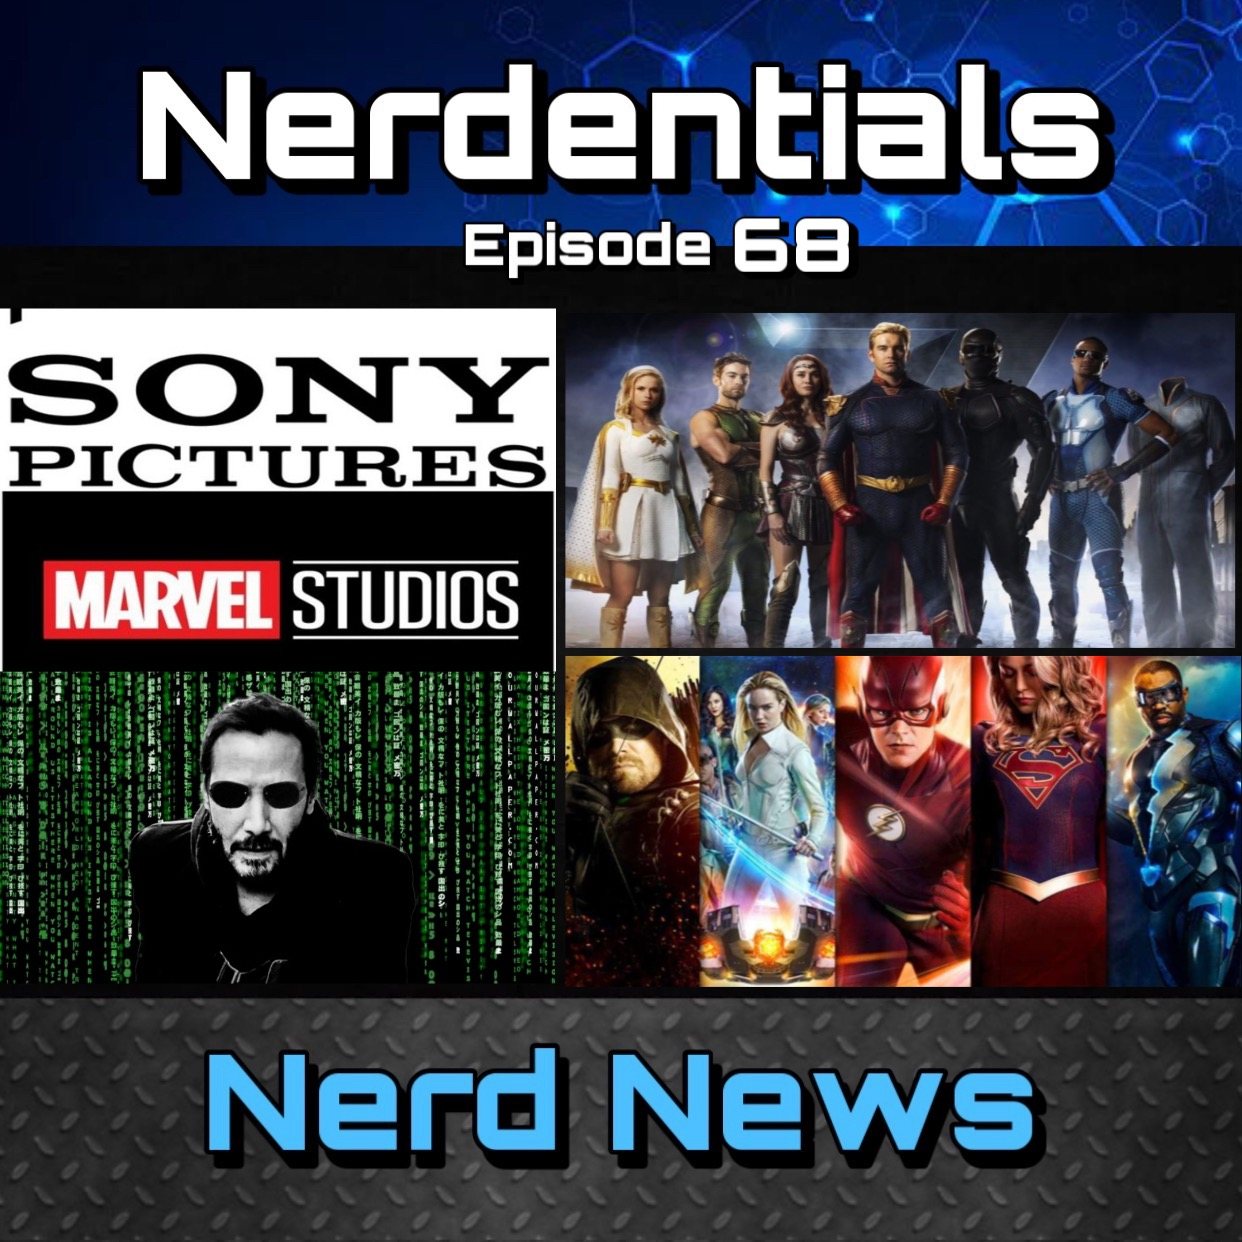 - Welcome to Nerdentials! Your weekly dose of the nerdy essentials. Covering Film, TV, Video Games and Comics.This week your nerds ran long and hard on this one! So check the time stamps below for easy navigation. Or listen to the whole thing!In Movie Matters your nerd hosts Joe, Nick and Lynn Dive into some casting news with The Black Knight joining The Eternals. Then a heavy discussion on Sony and Marvel splitting up the Spider-Man relation.Then Nick hits us with some Matrix 4 news and our thoughts and feelings on Rambo: Last Blood.Then Nick and Joe carry out the rest of the show with a breakdown on all you need to know with the CW crossover event known as Crisis on Infinite Earths. Then we finish with a spoiler free review of Amazon Prime's Original Series The Boys.Time Stamps:►Movie Matters: 6:43►Black Knight News 7:33►Sony/Marvel Split 17:30►The Matrix 4 47:10►Rambo: Last Blood 55:00►TV Talk 1:12:20►CW Crossover Event Breakdown 1:12:20►The Boys Season 1 Review 1:45:06